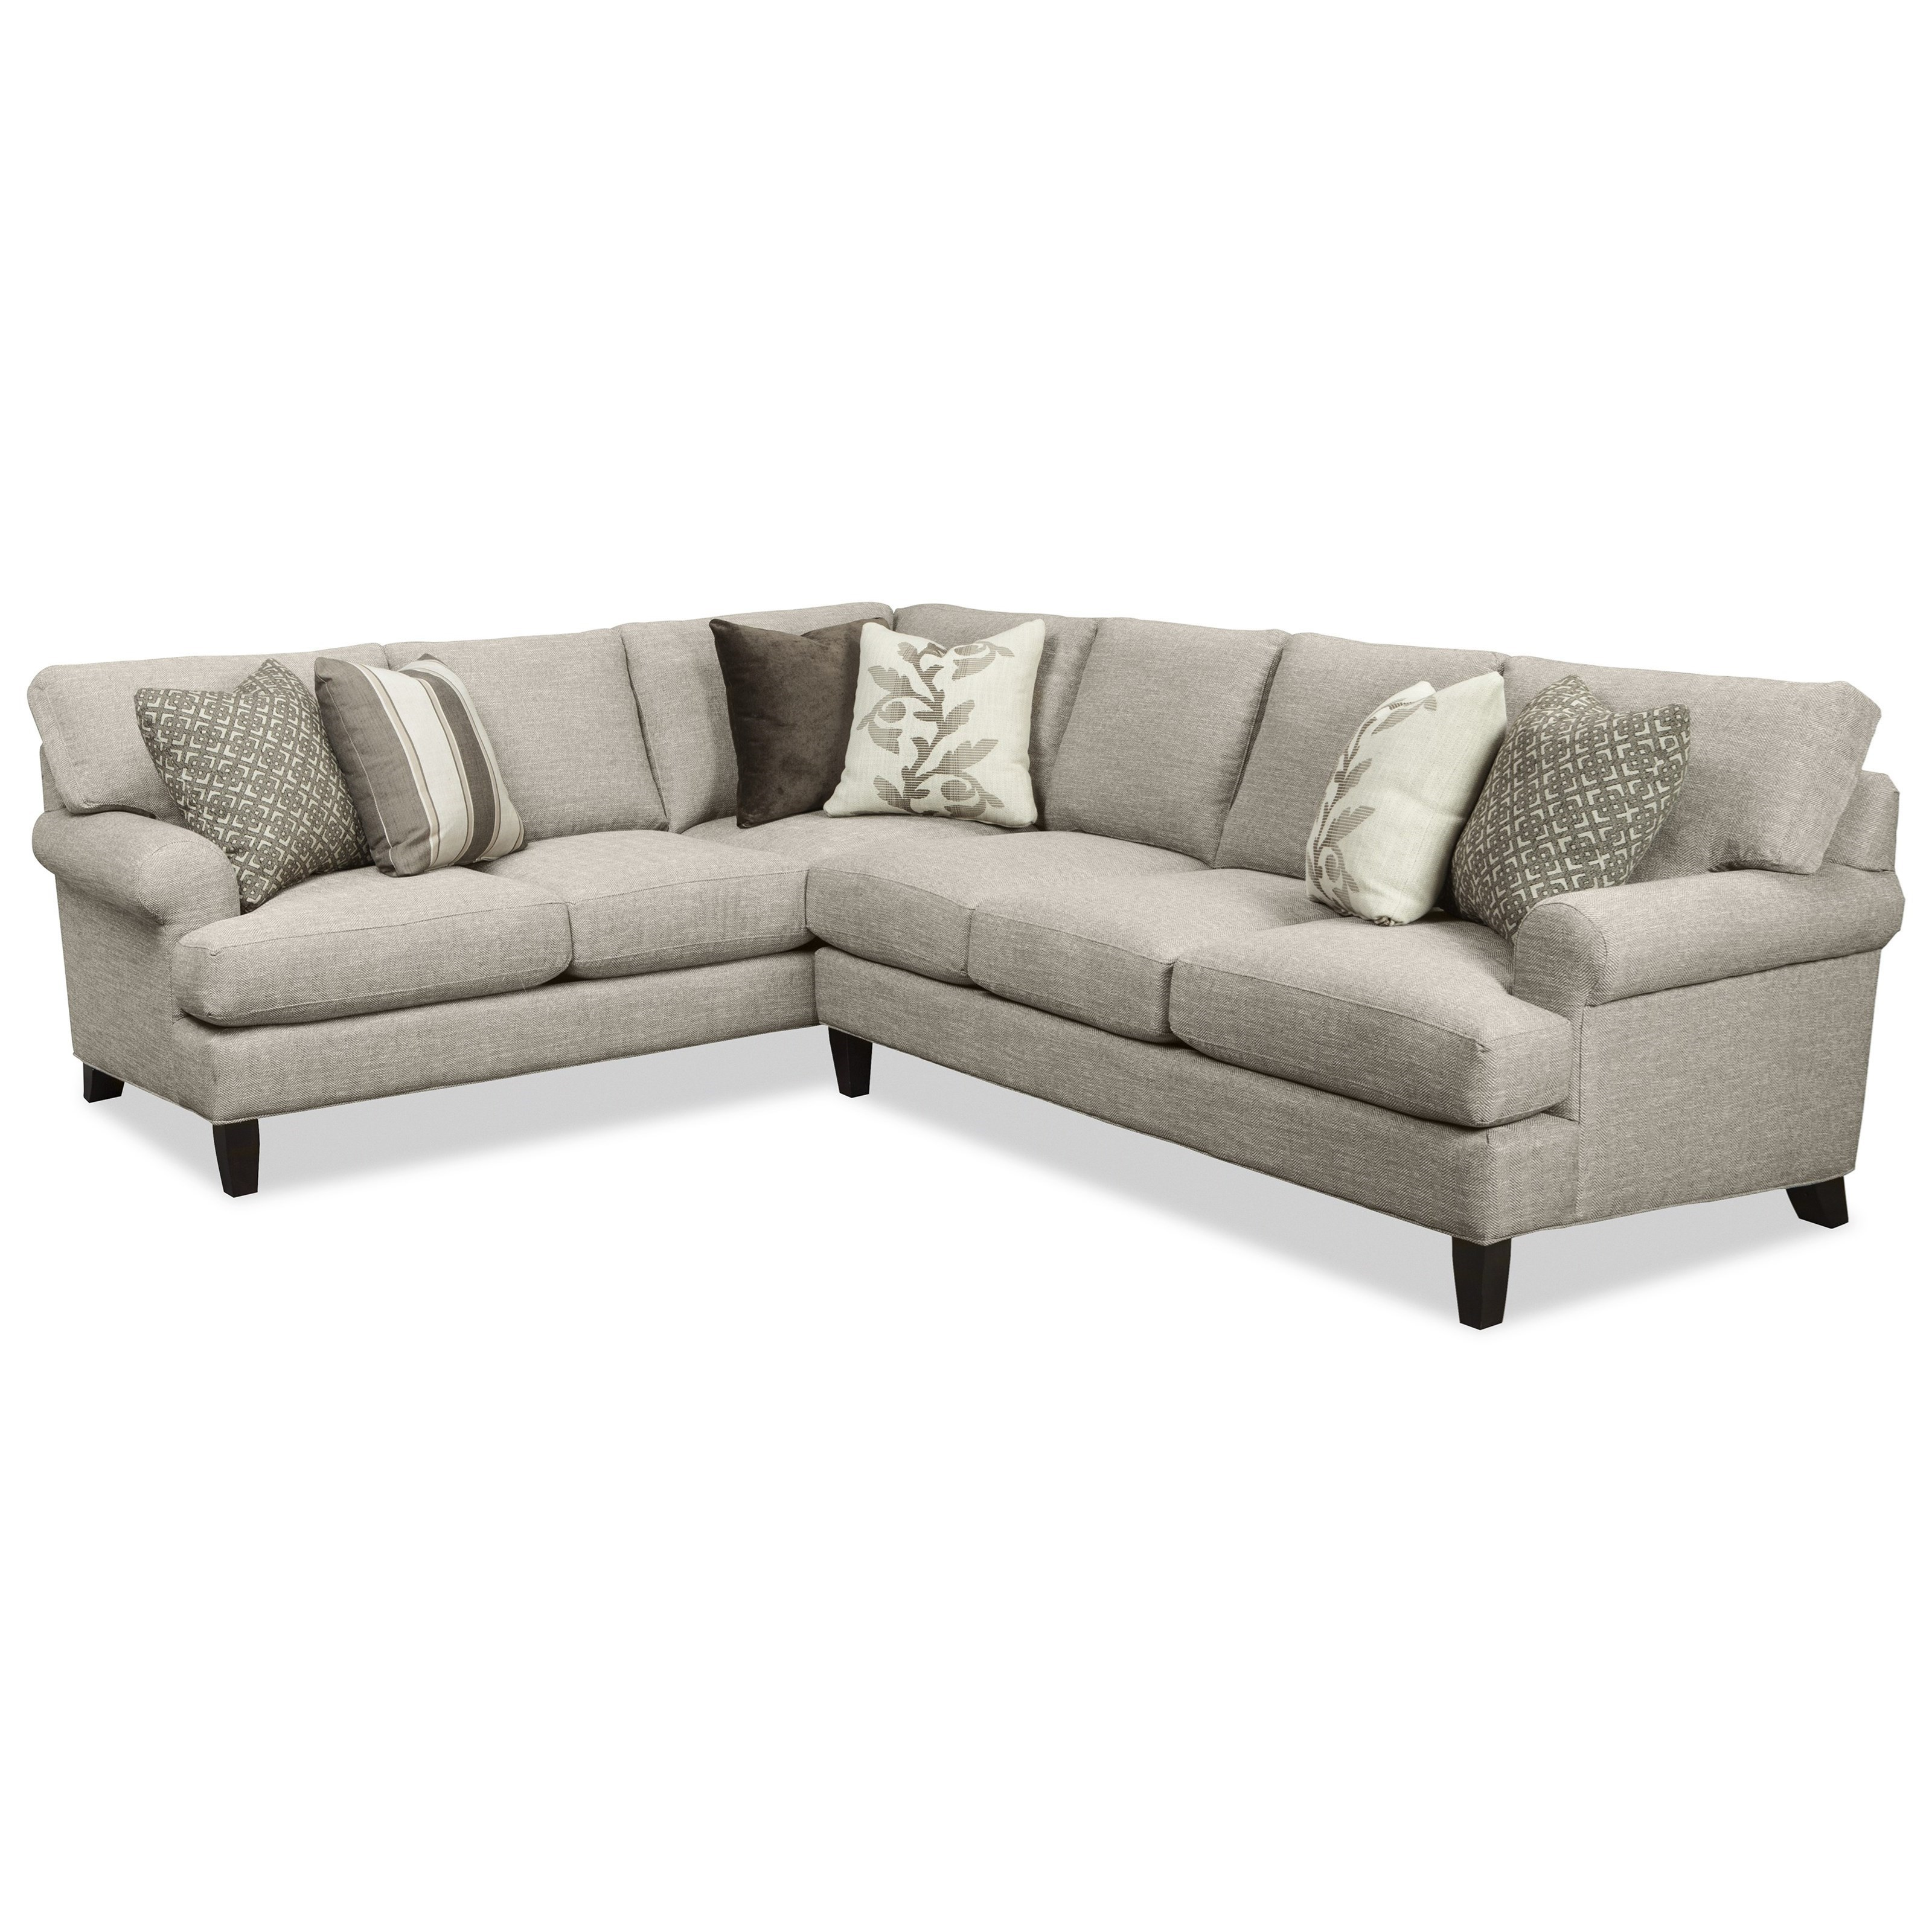 Craftmaster 767350-767450-767550-767650 2 Pc Sectional Sofa w/ LAF Corner Sofa - Item Number: 767556+767551-TOLLIVER-41